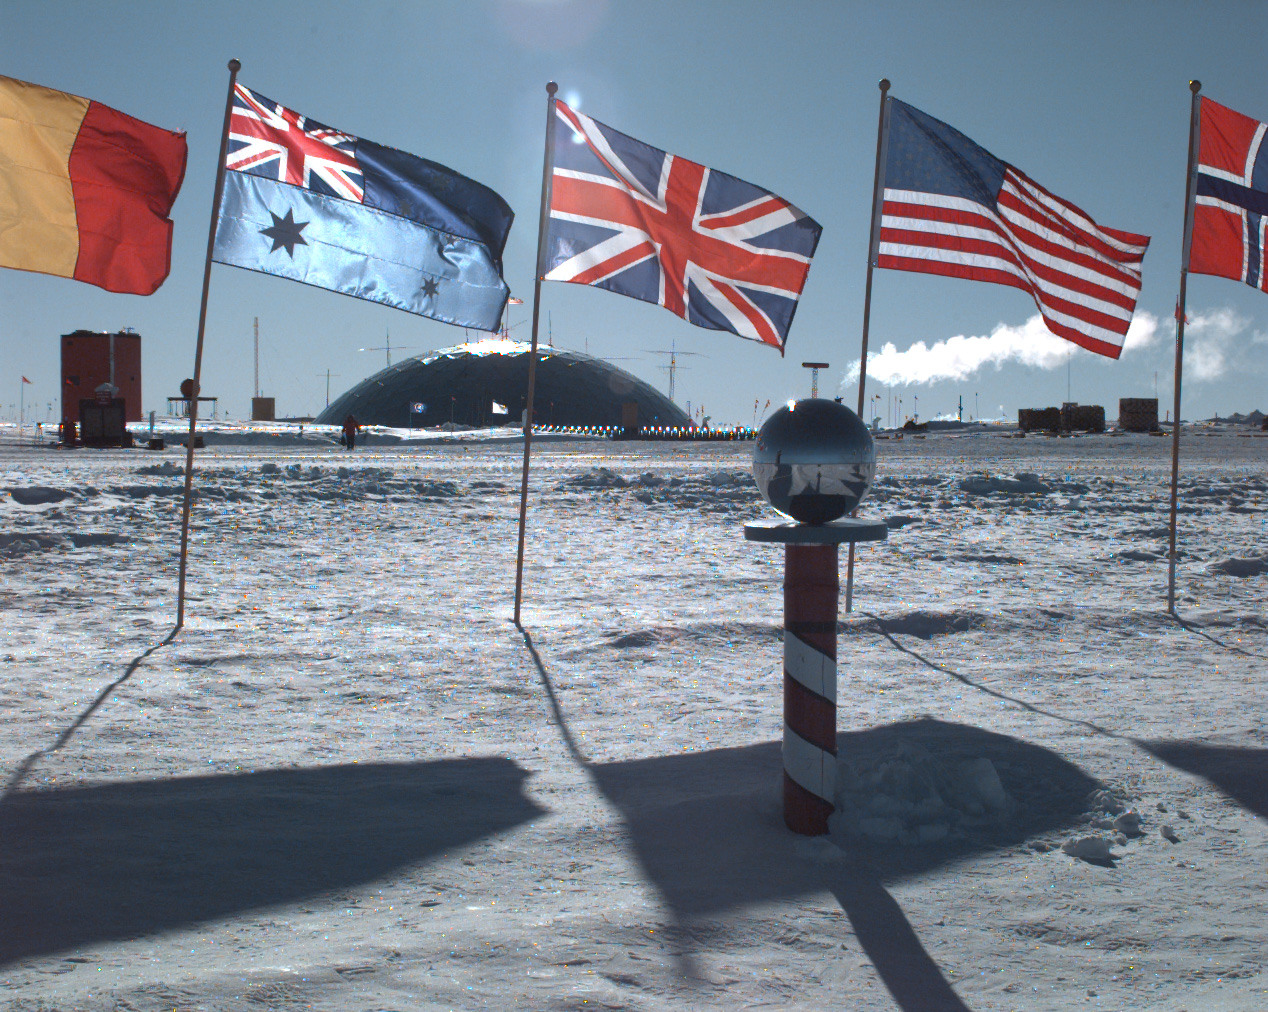 Amundsen Scott South Pole Station, Antarctica.